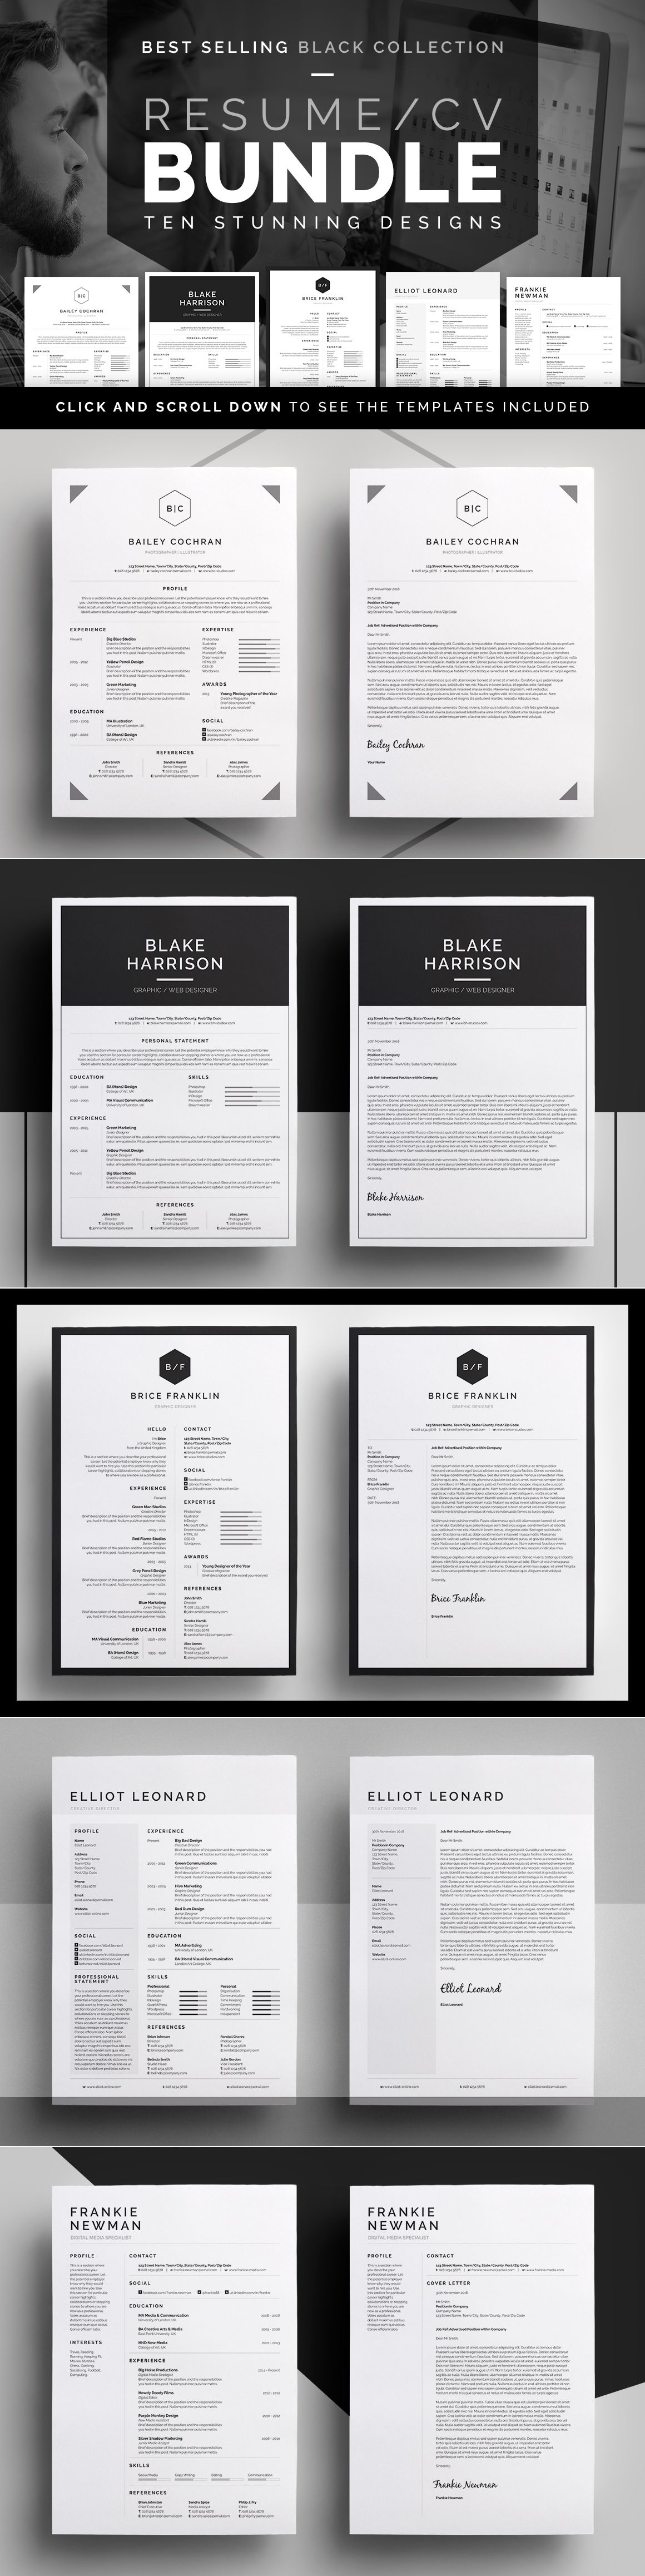 resume  cv bundle